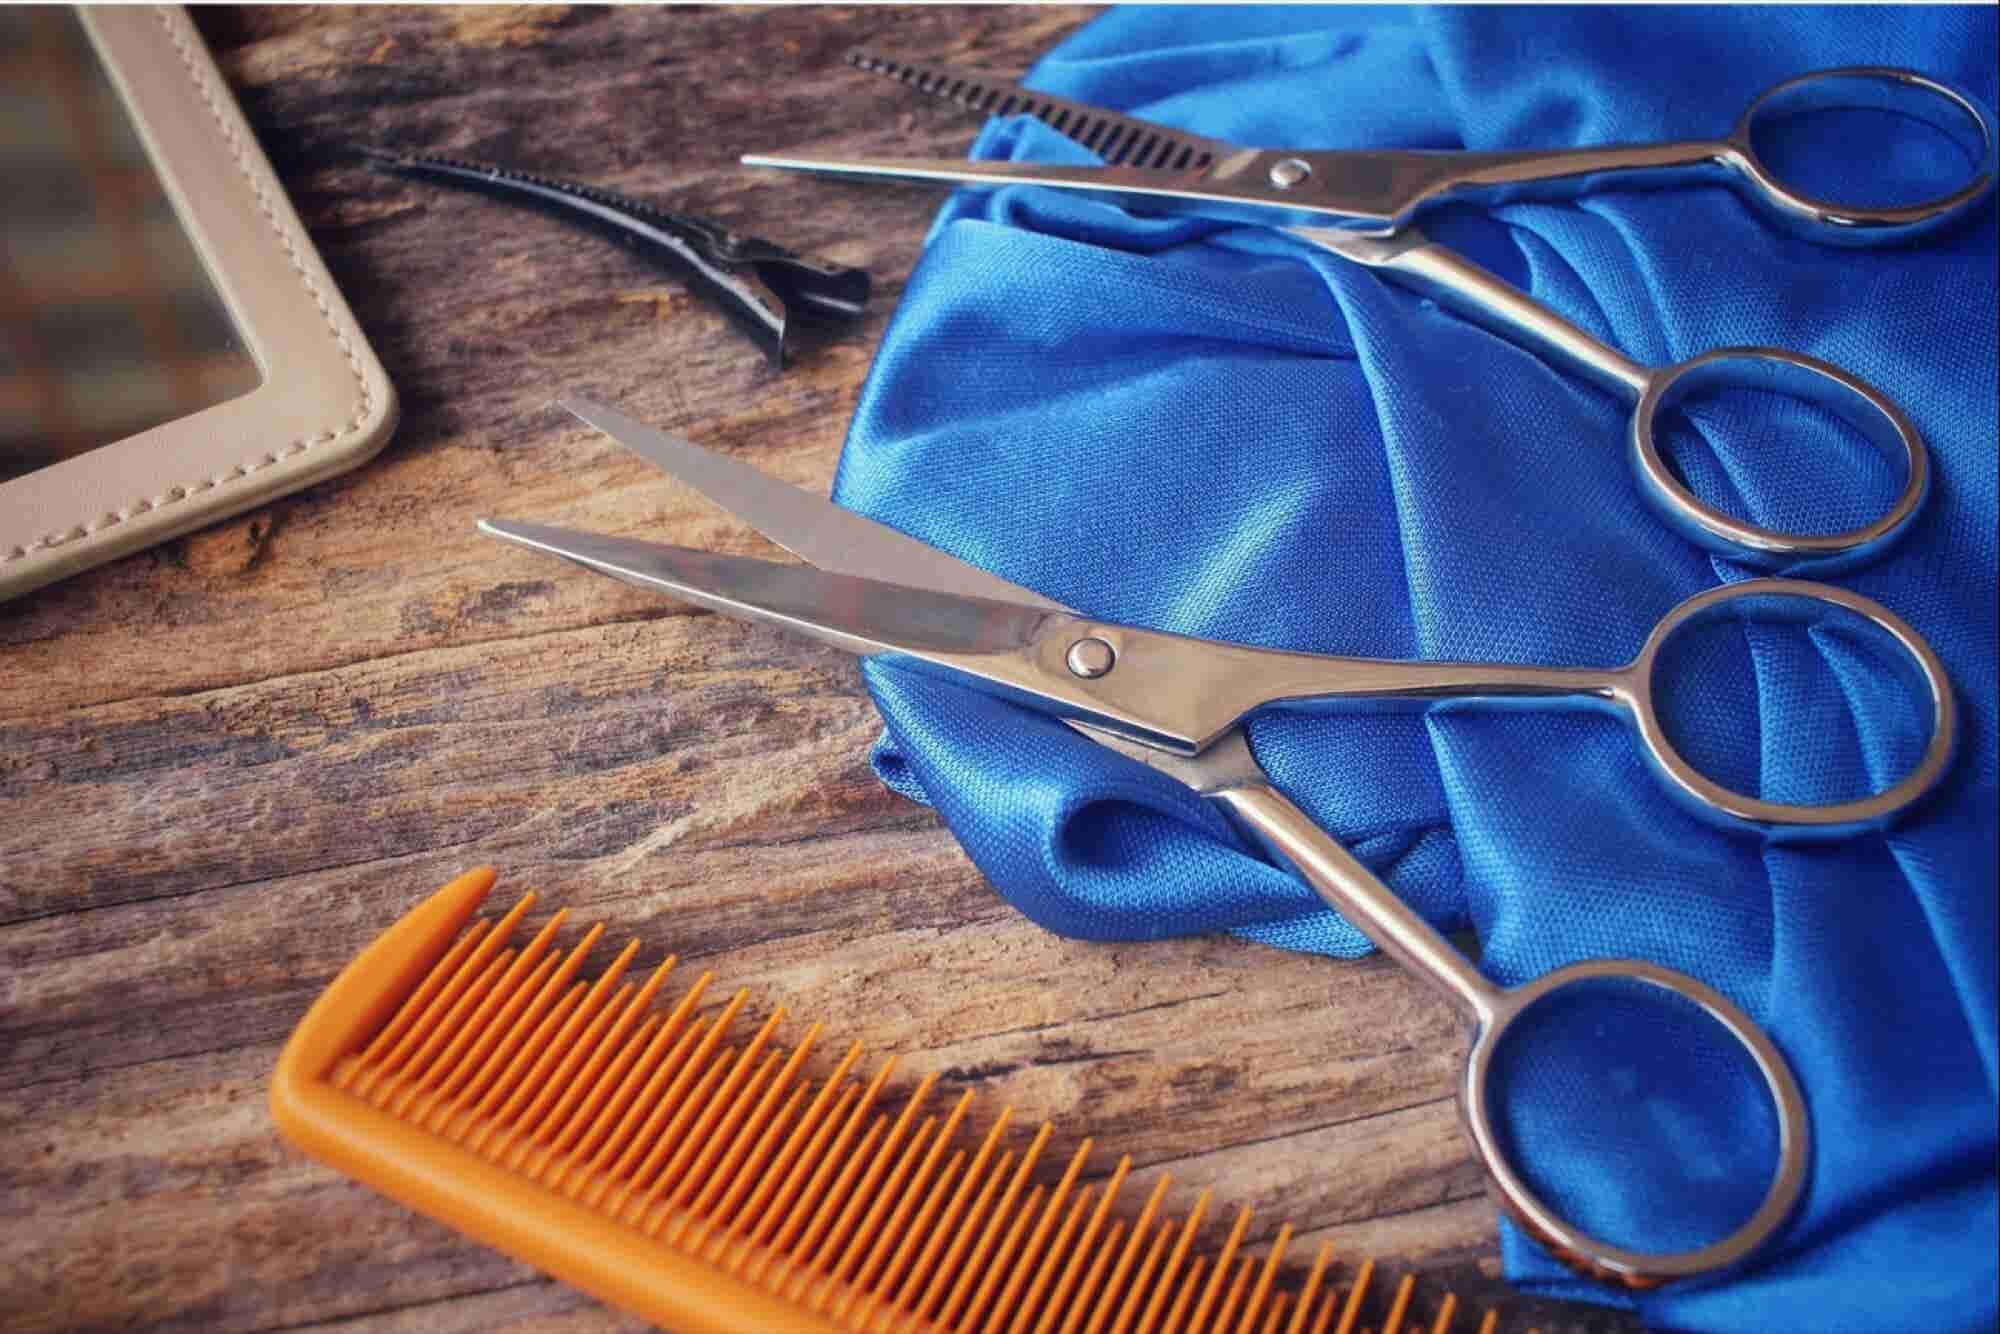 Give This Franchisee a 'Cut' From Your Hair Care Bill This Month to Help Other Veterans Succeed